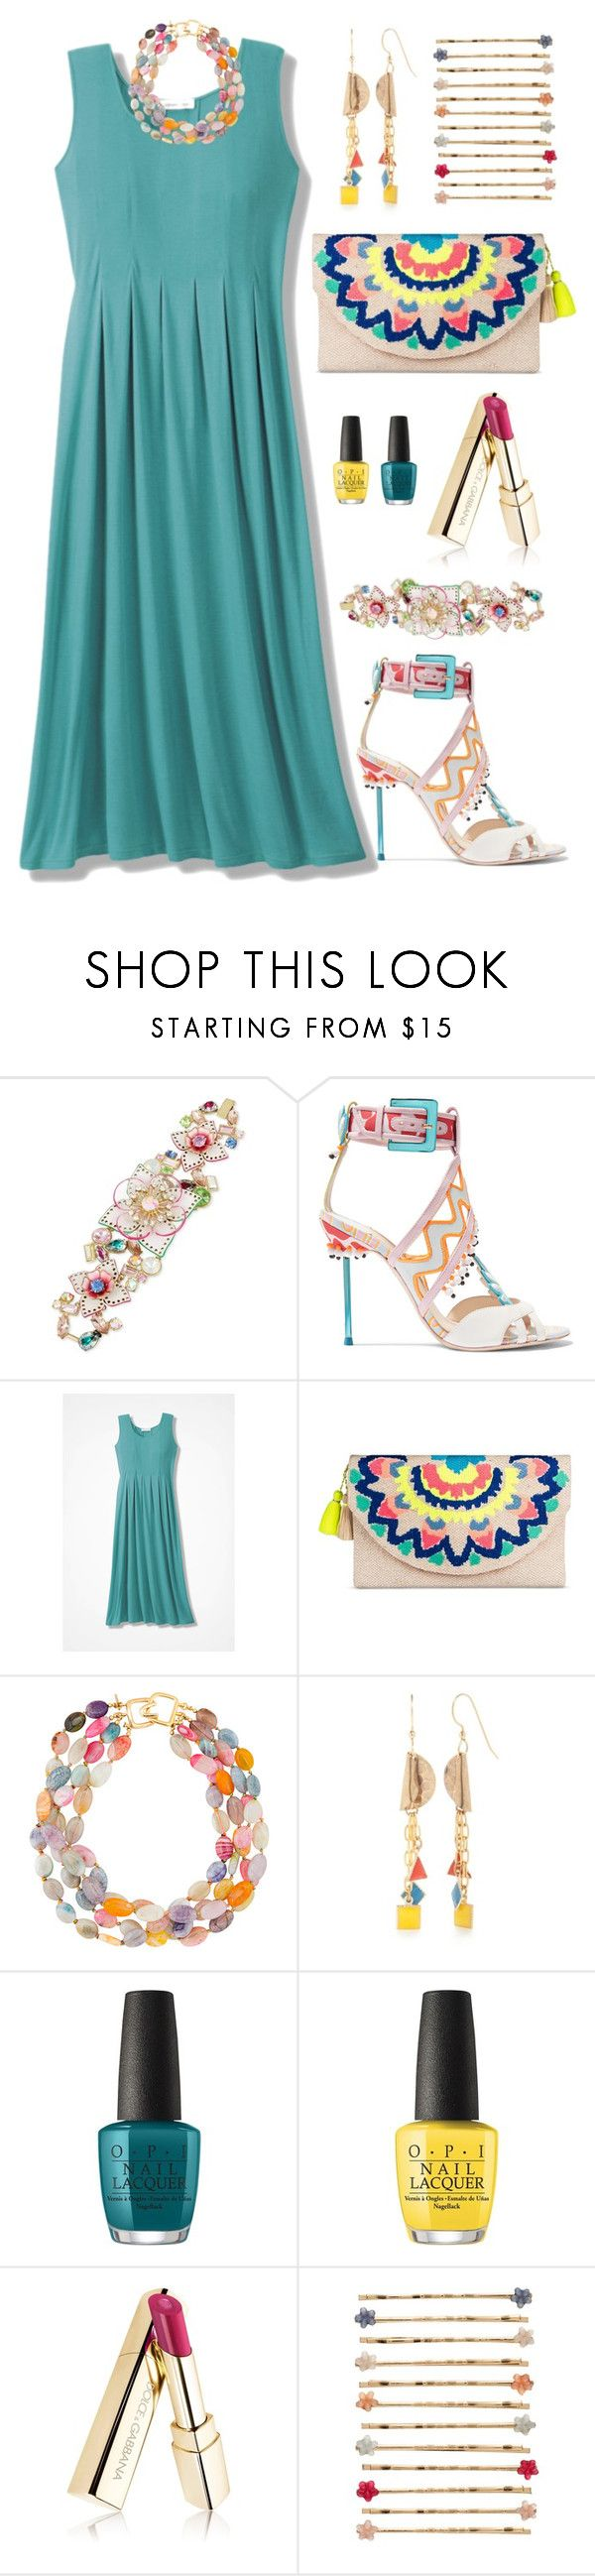 """""""Tealdrop"""" by indirareeves on Polyvore featuring Betsey Johnson, Sophia Webster, Merona, Kenneth Jay Lane, Silver Forest, OPI and LC Lauren Conrad"""